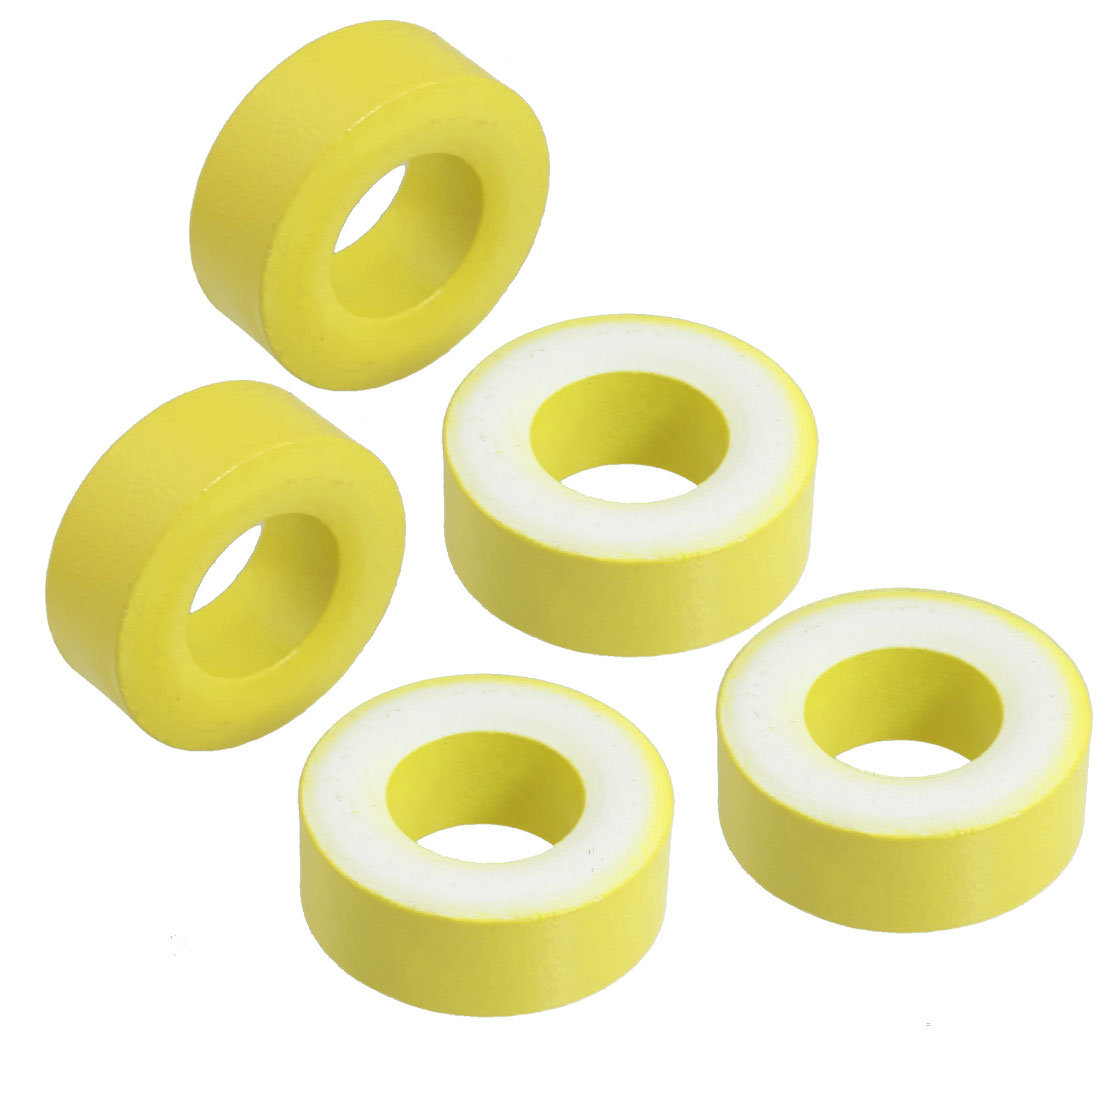 5 Pcs 27mm x 14mm x 11mm Yellow White Iron Core Power Inductor Ferrite Ring